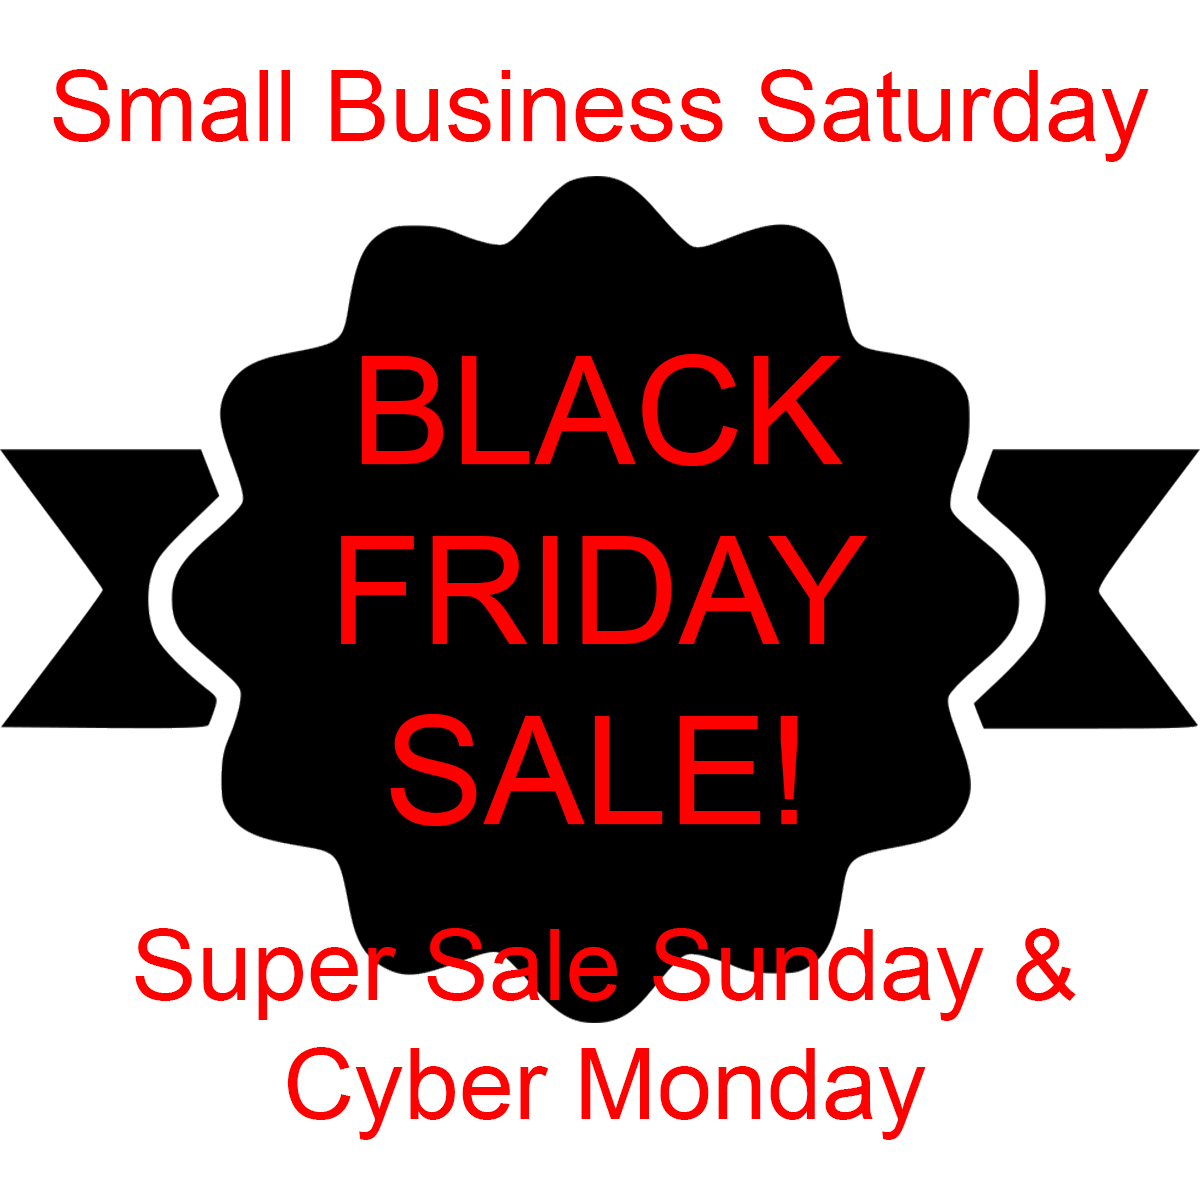 Black Friday-Small Business Saturday-Super Sale Sunday-Cyber Monday